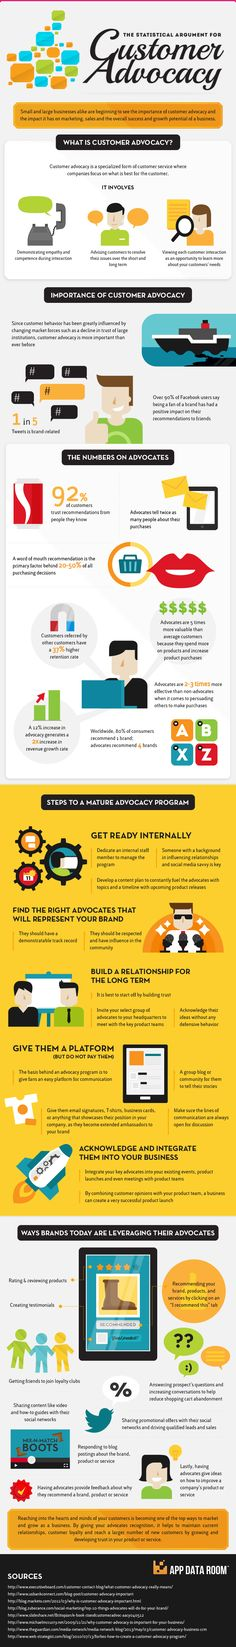 The Statistical Argument For Customer Advocacy   #infographic #CustomerAdvocacy #CustomerService #Business